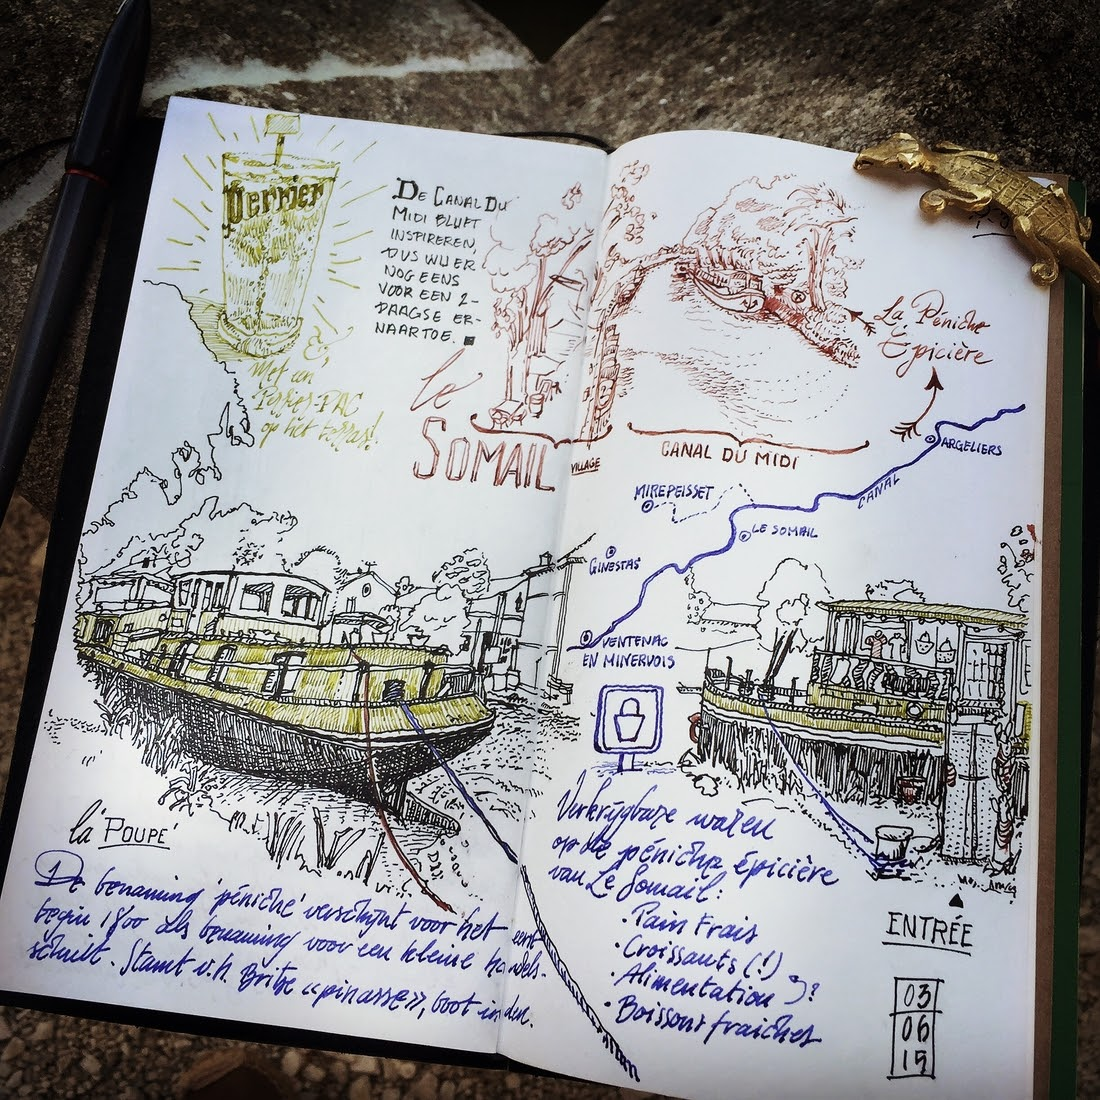 07-Le-Somail-dessinauteur-Urban-Sketches-and-Travel-Journals-on-Moleskine-www-designstack-co